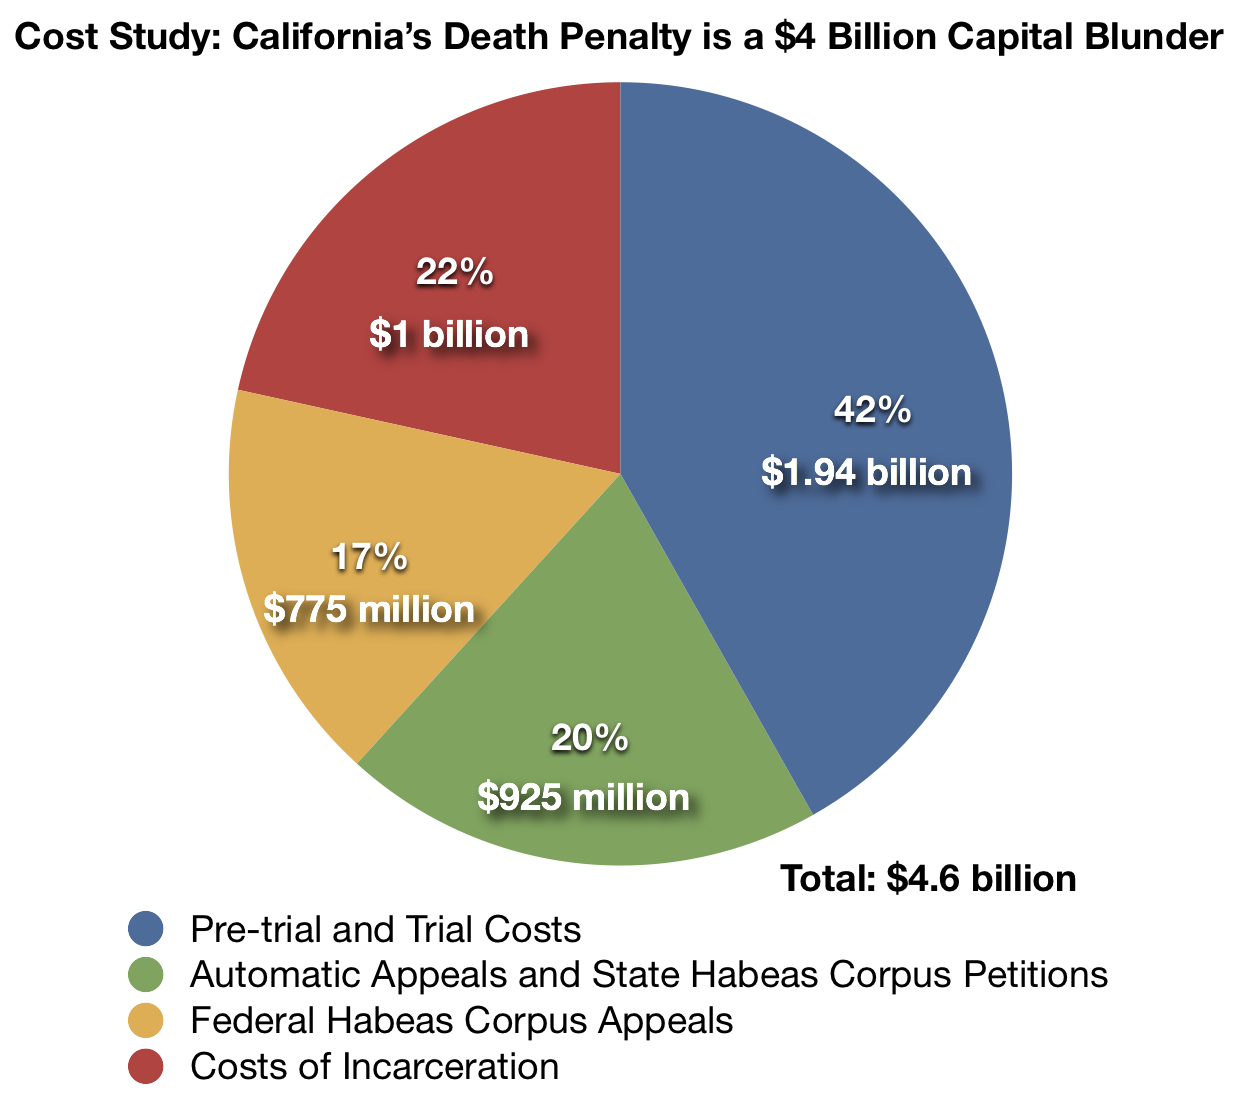 a look at the bias of the criminal justice system in the use of the capital punishment